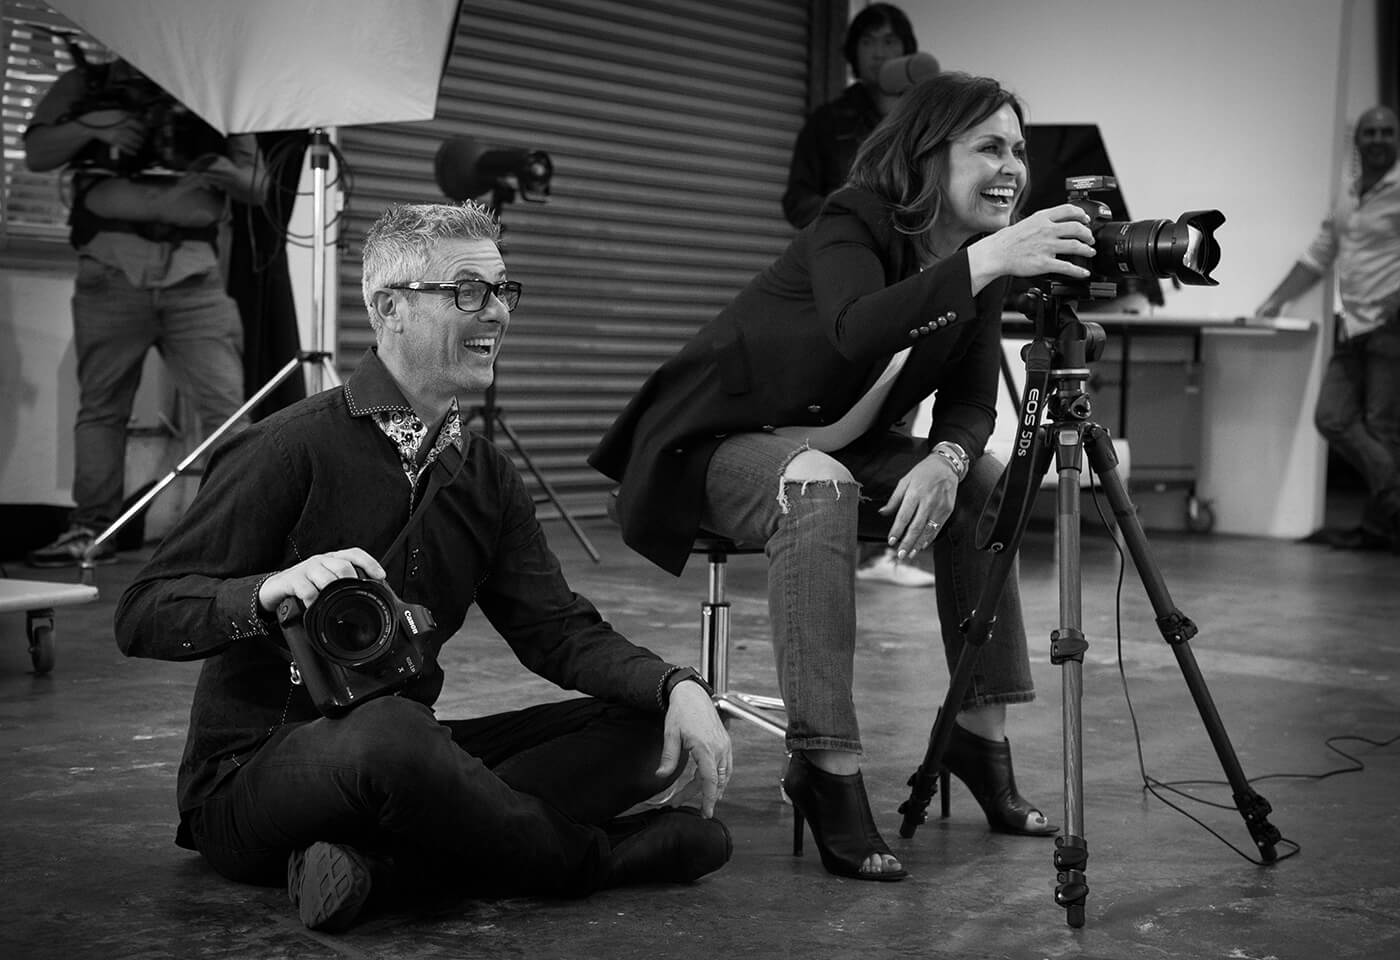 image of Daniel Linnet and Lisa Wilkinson operating Canon cameras